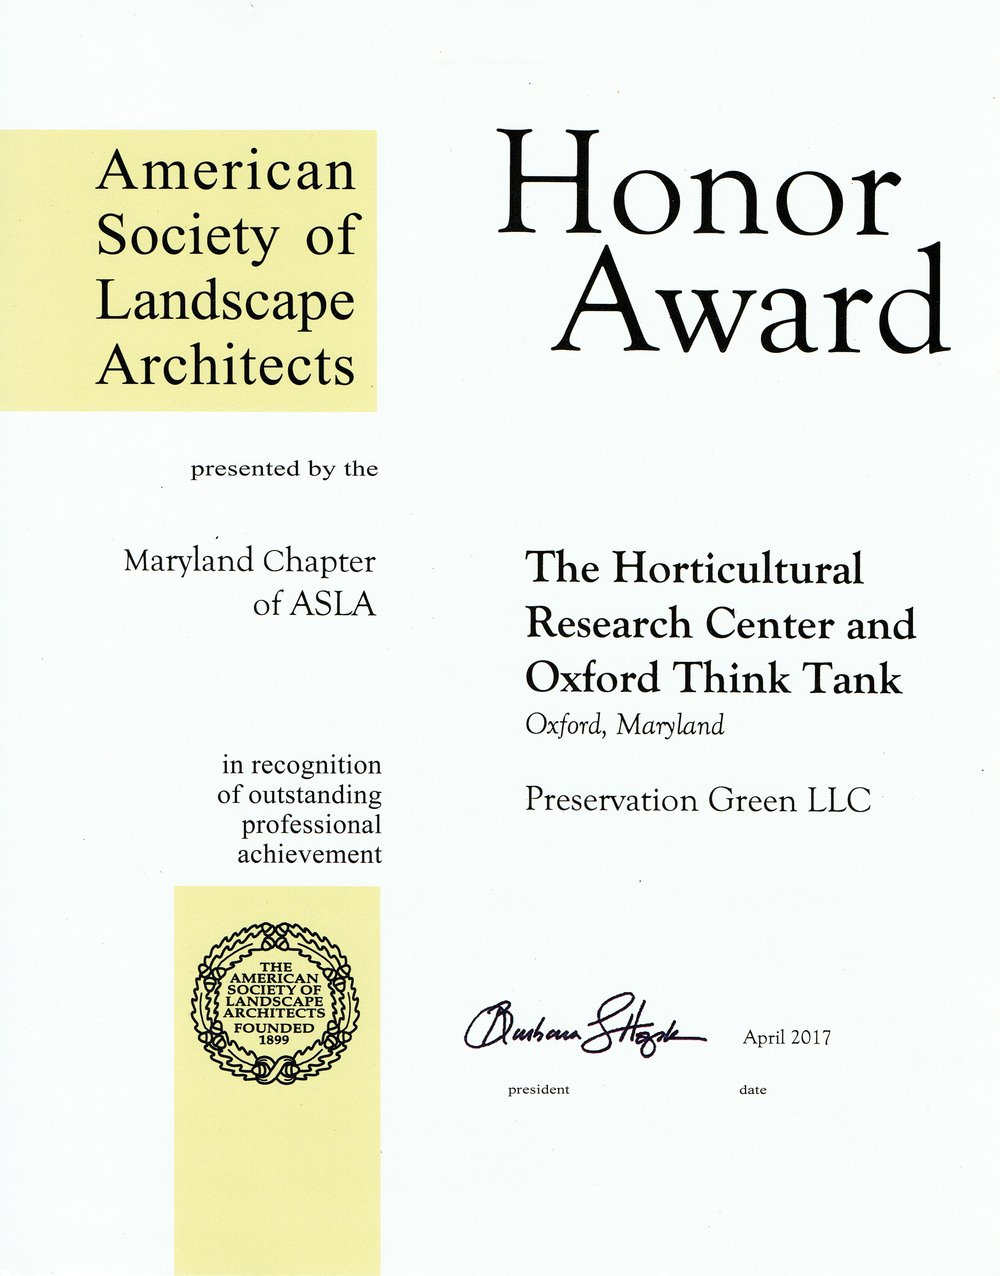 ASLA award.jpeg